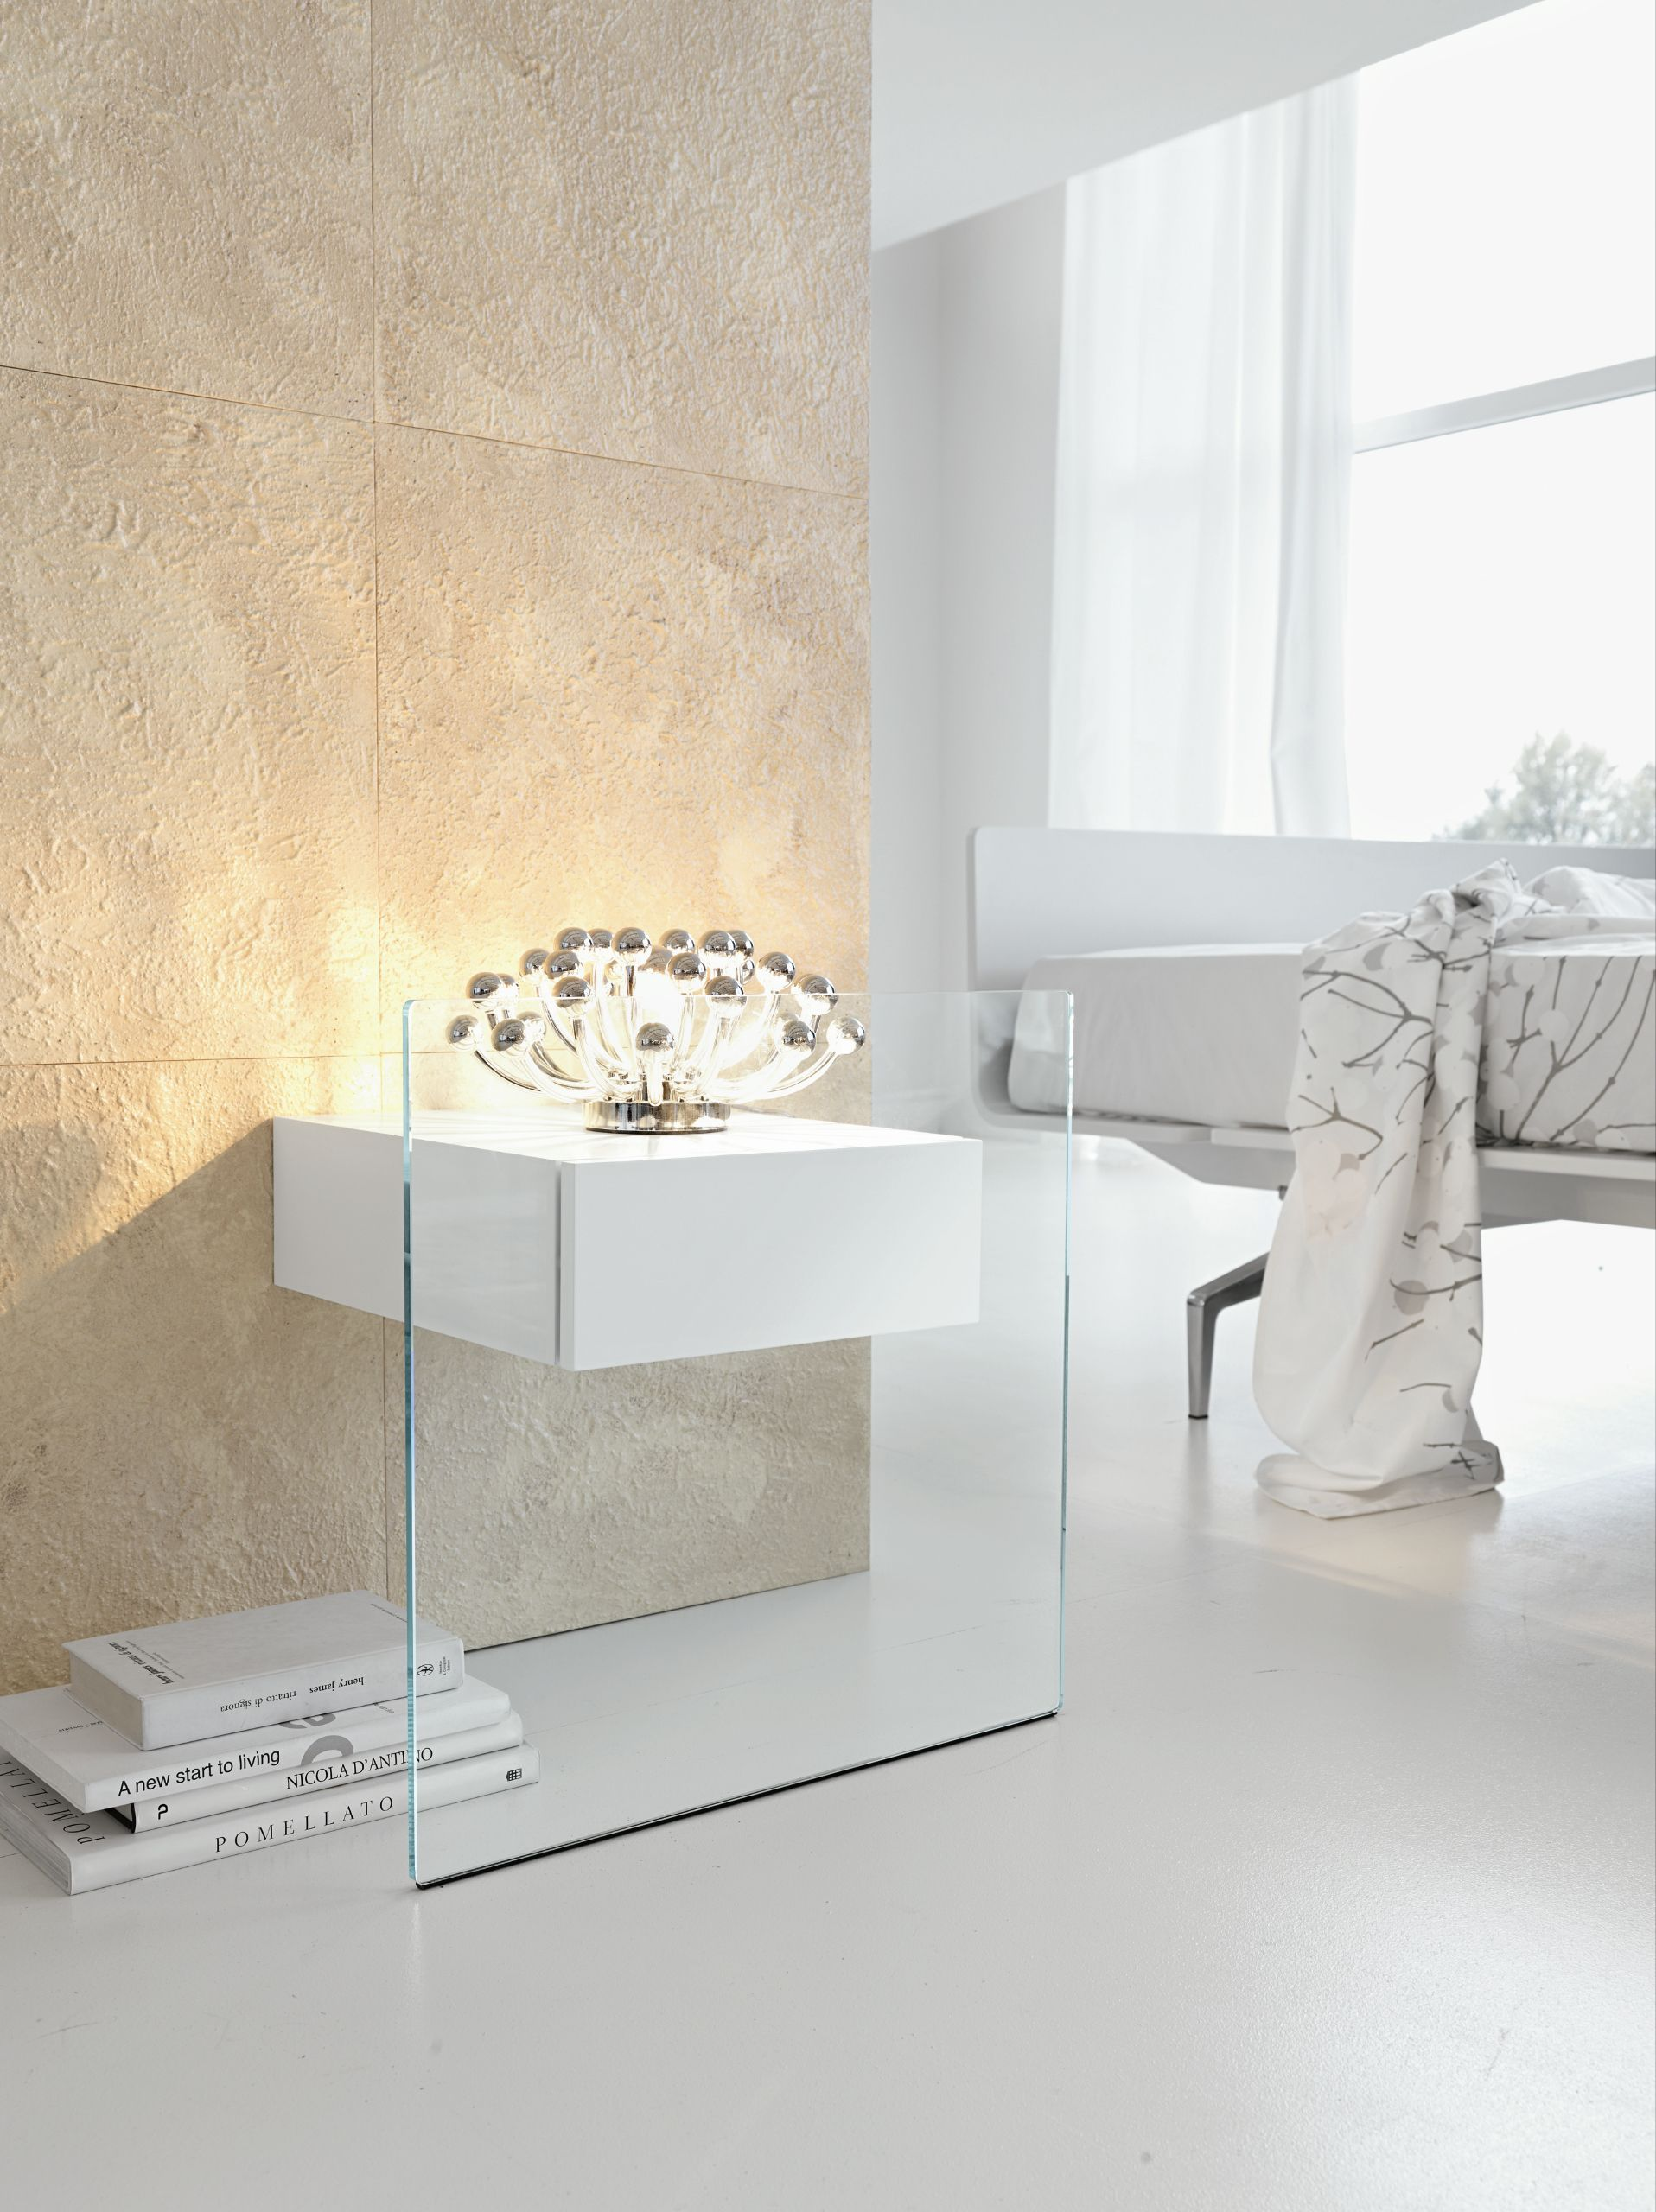 nachttisch glas great twotier bath shelf would also be. Black Bedroom Furniture Sets. Home Design Ideas